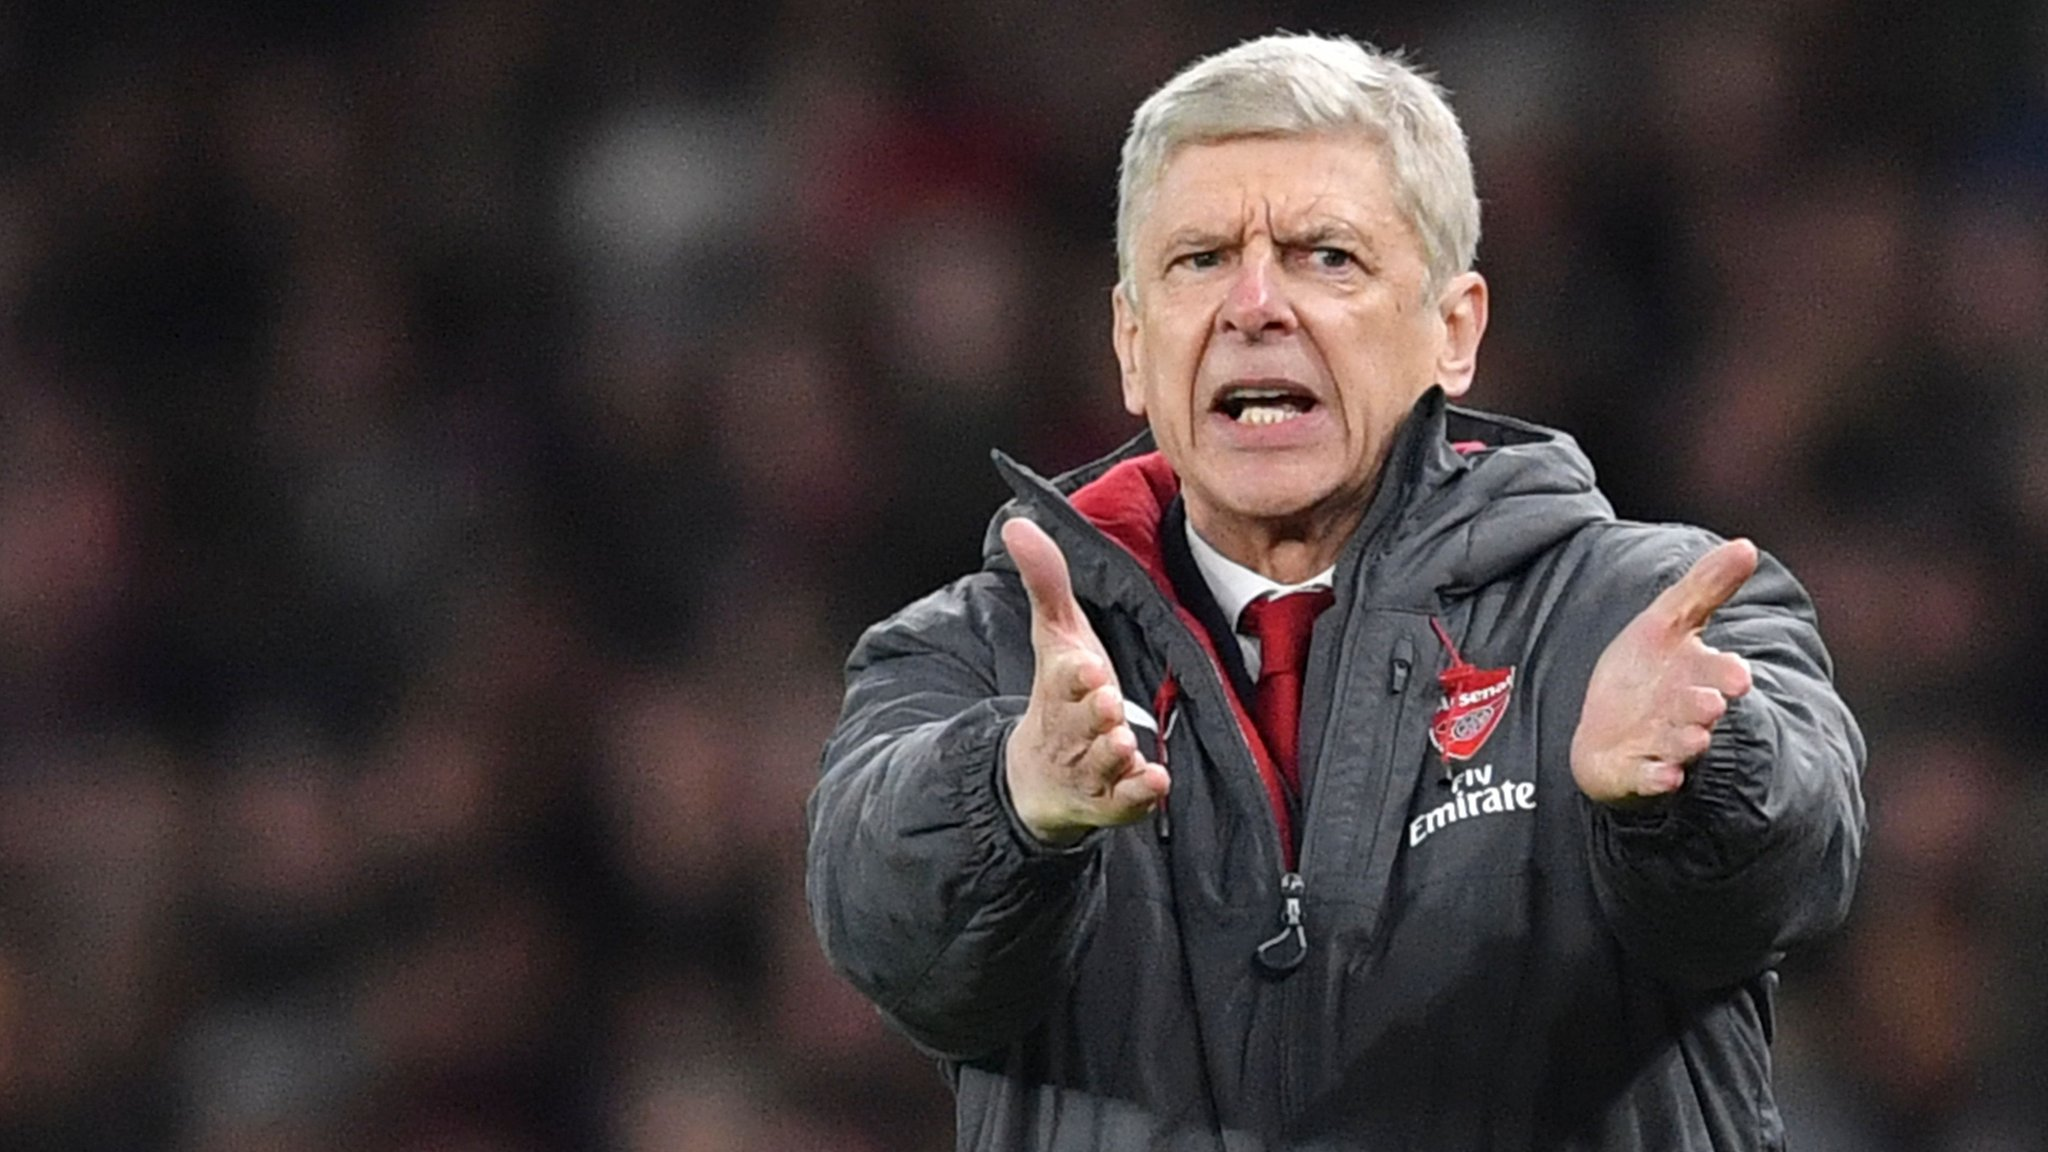 English players may be 'masters' of diving - Wenger